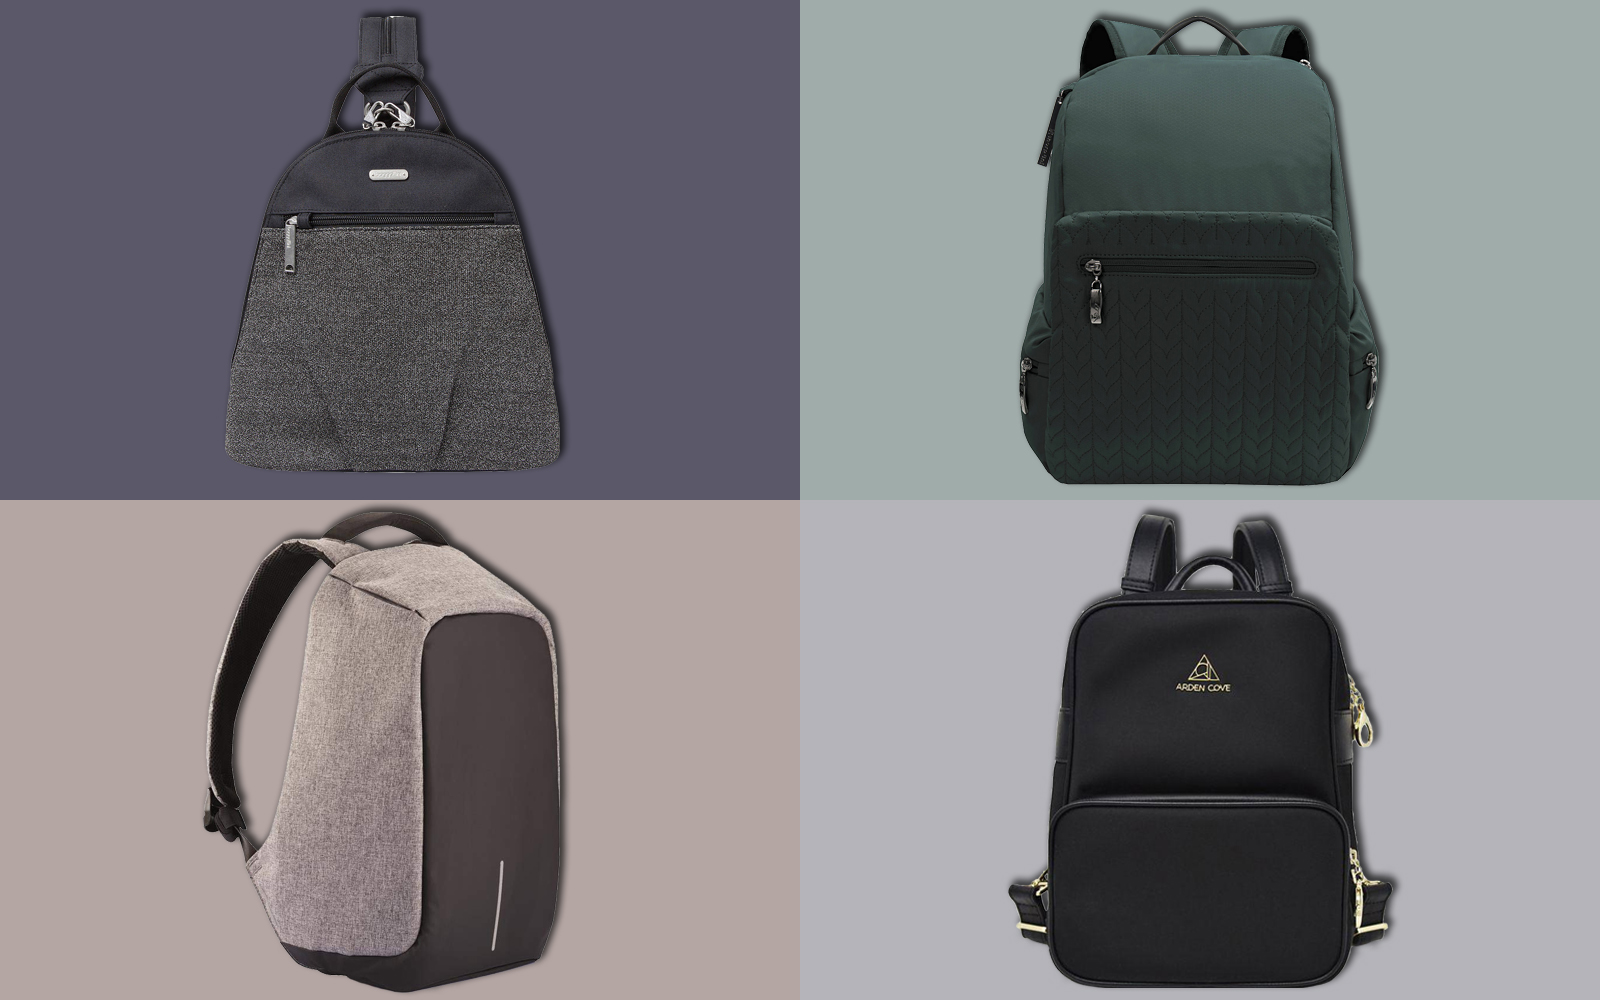 The Best Anti-theft Backpacks to Keep Your Belongings Safe While You Travel